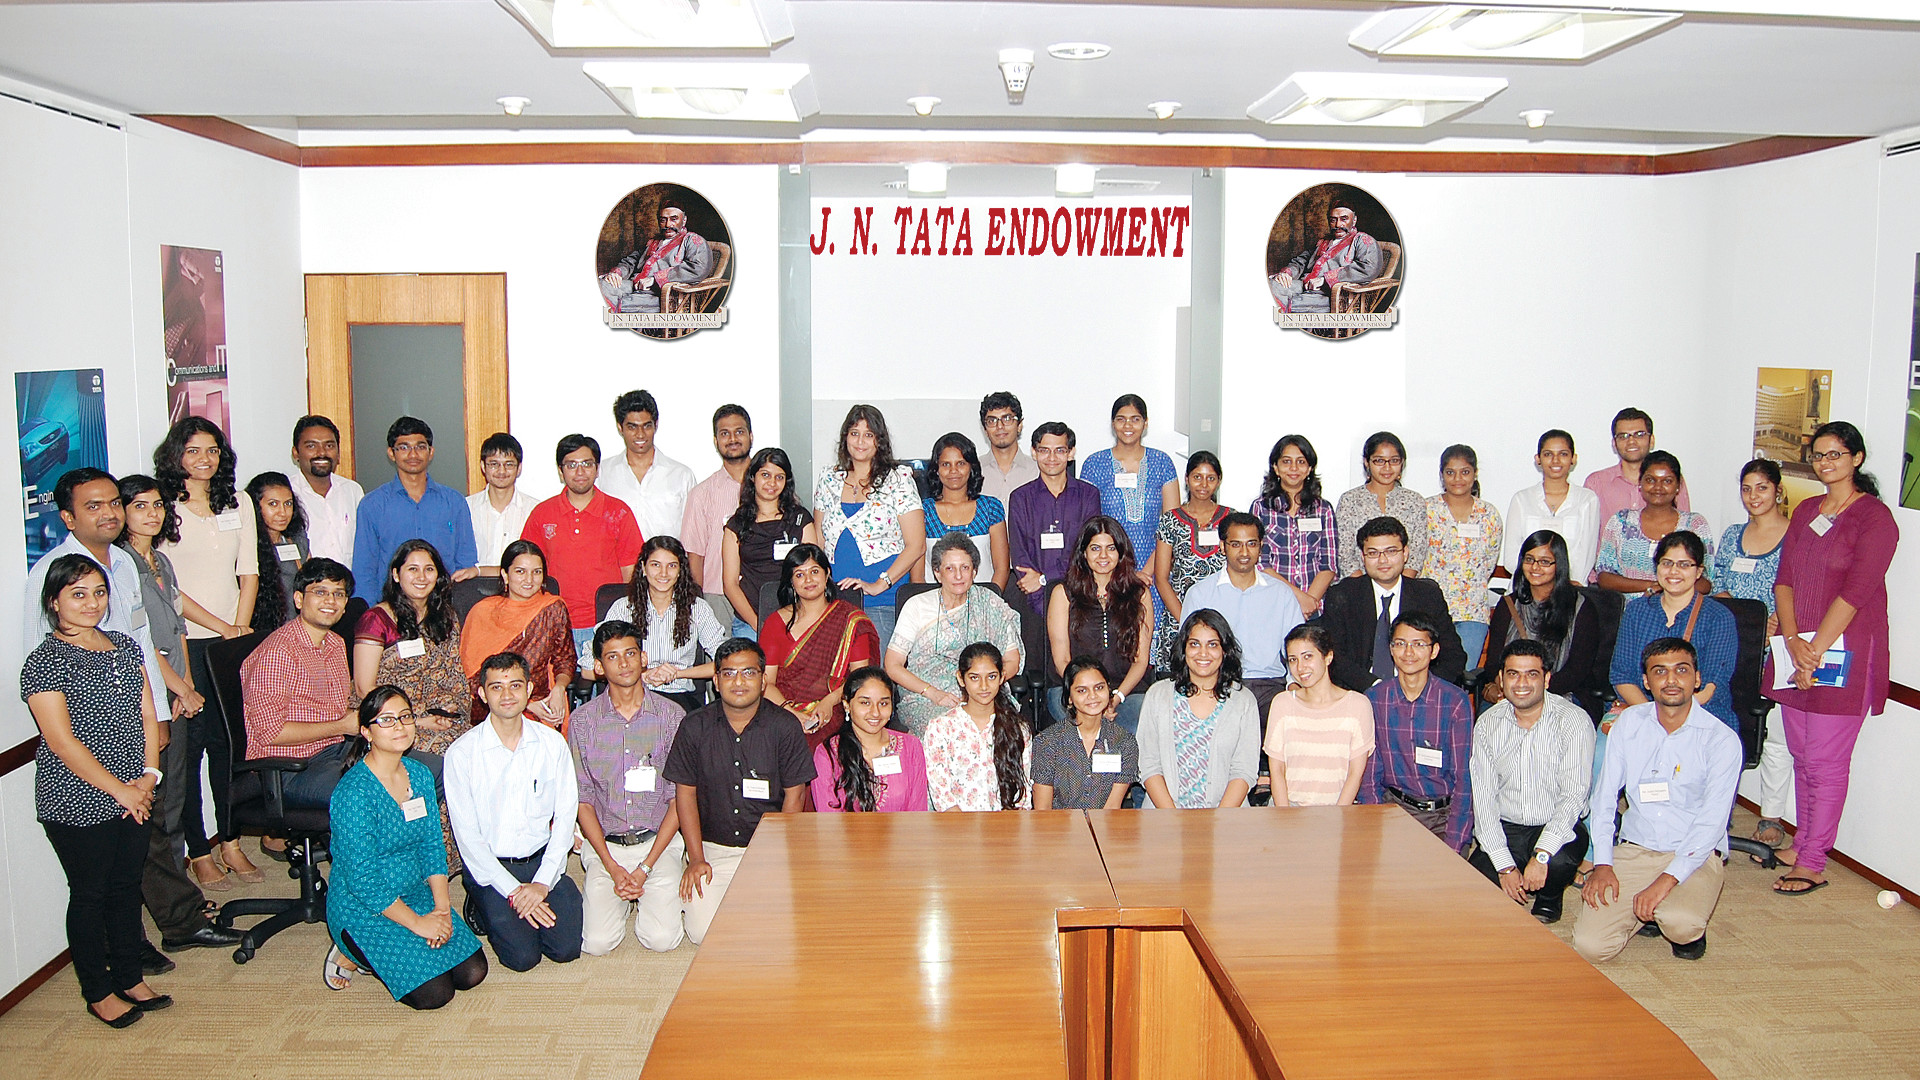 JN Tata scholars are some of the best and brightest